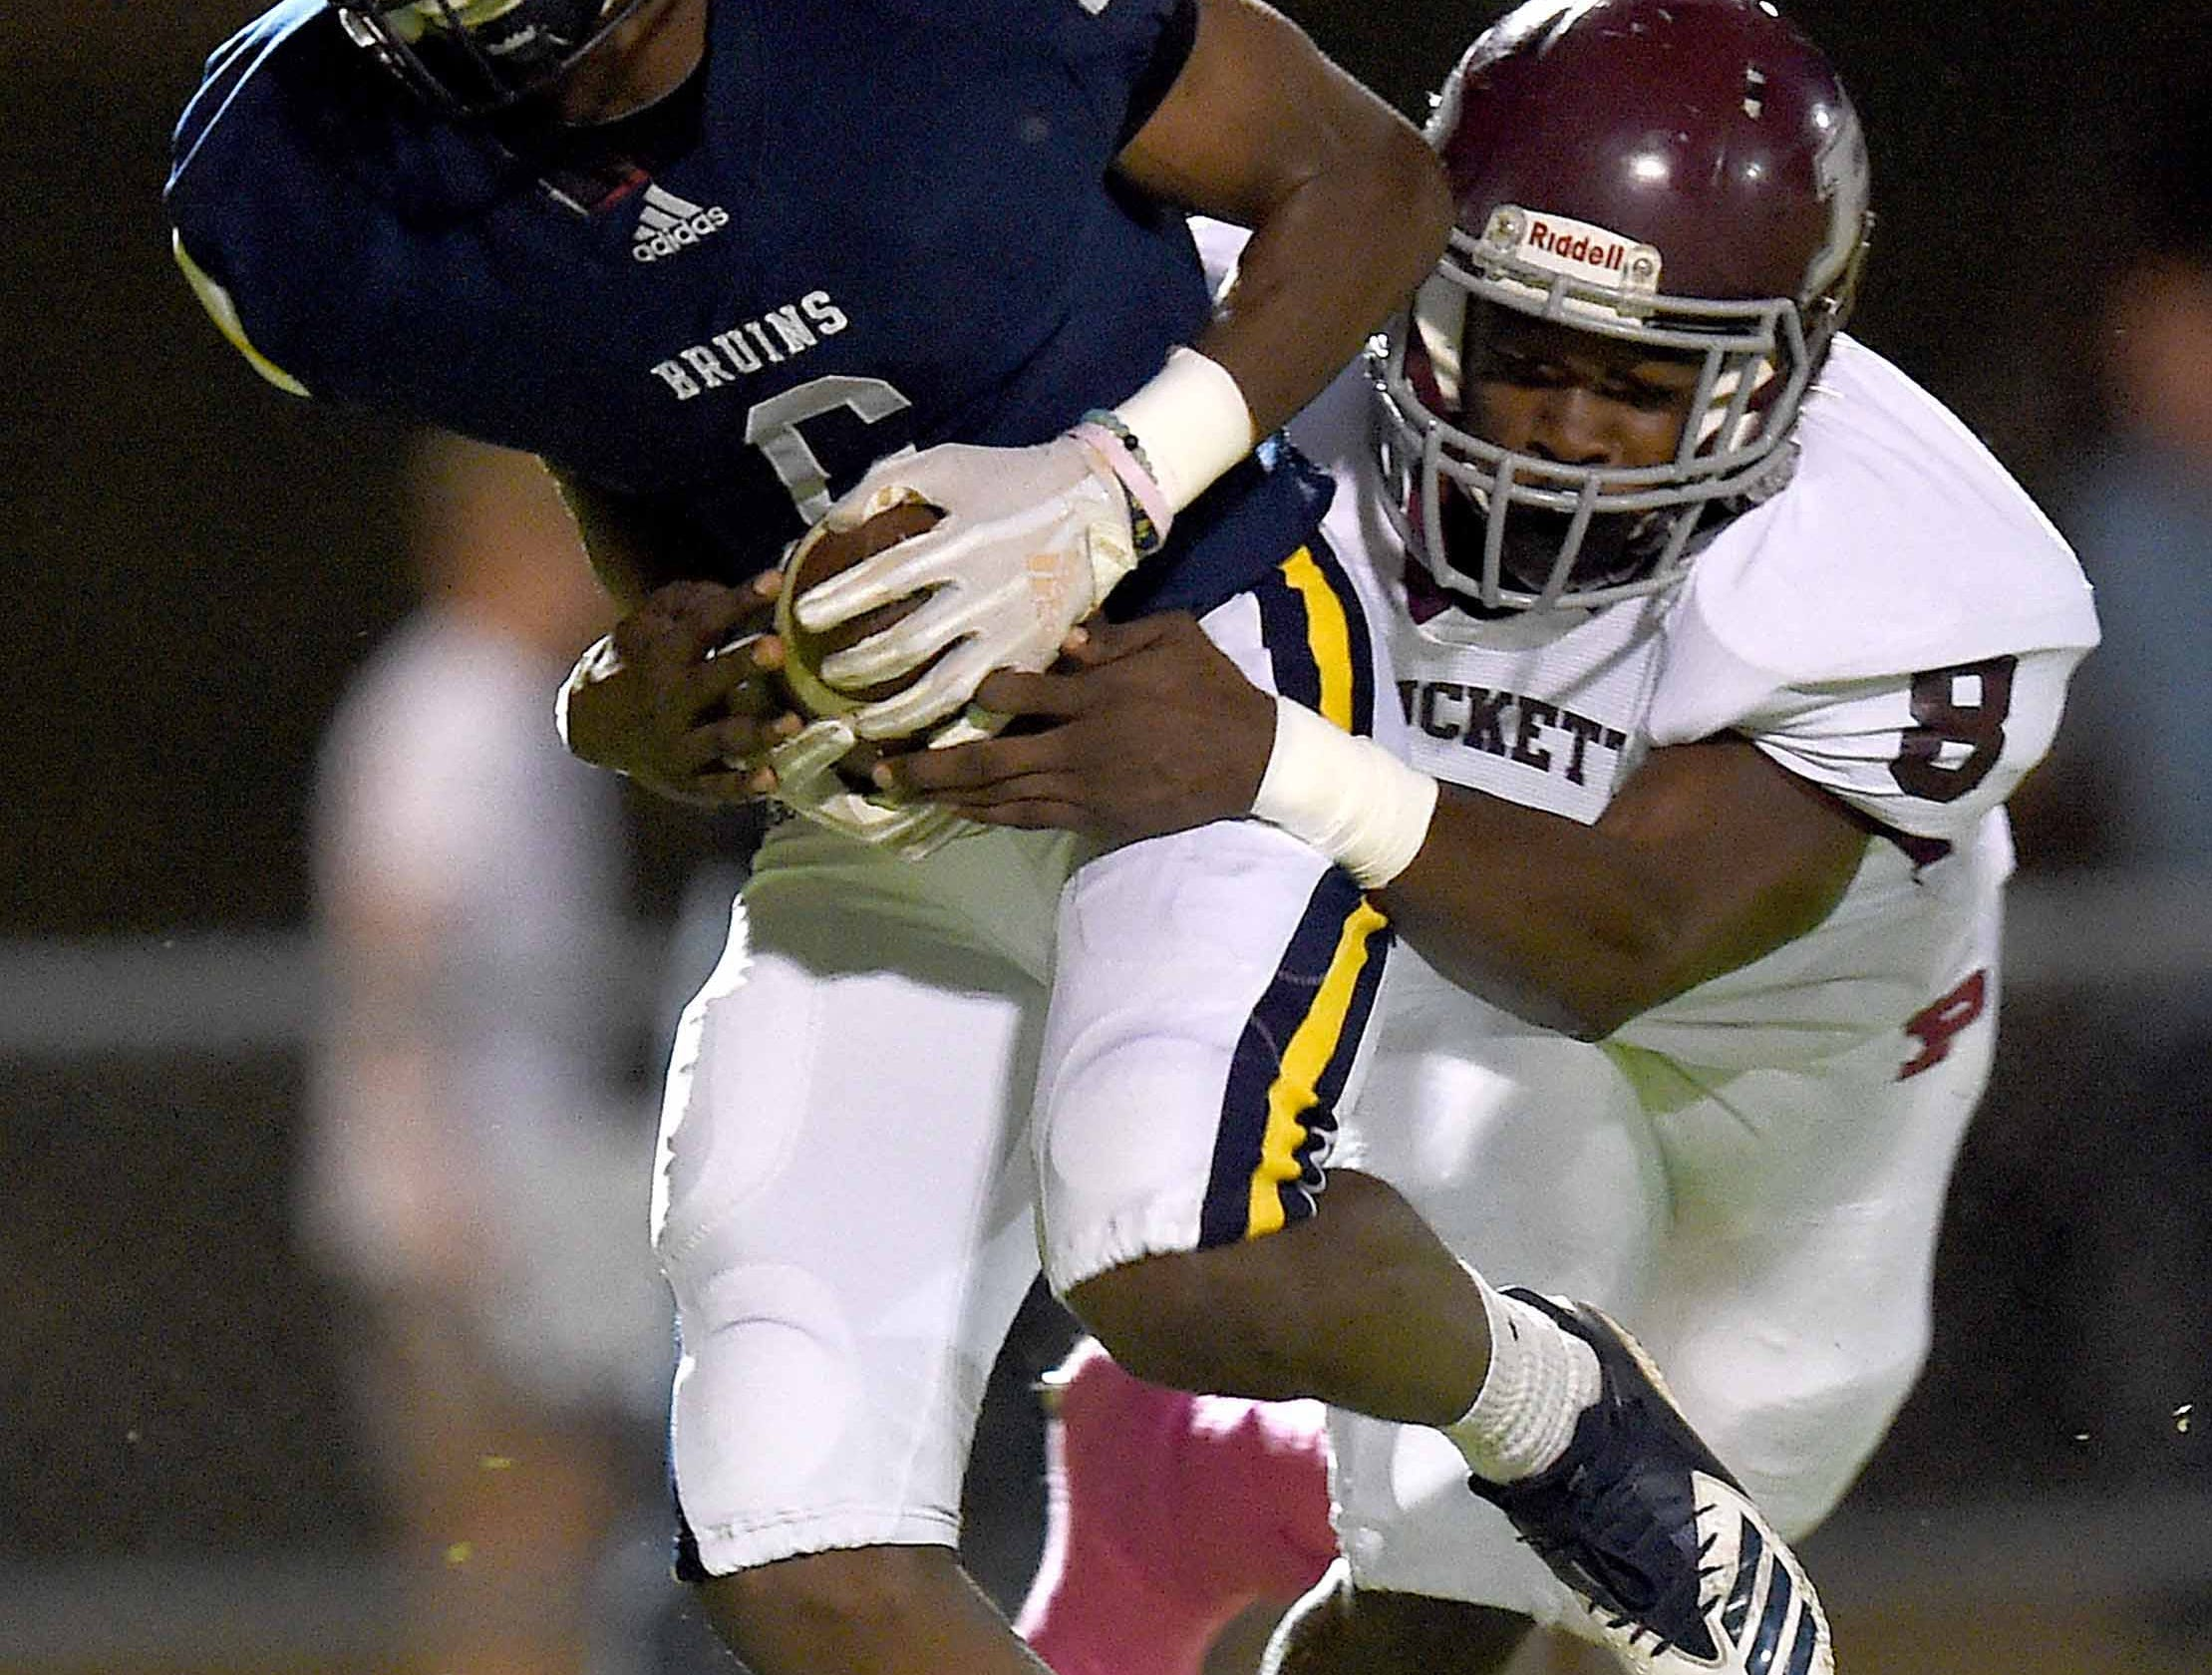 St. Joseph's Kiland Harrison (6) is tackled by Puckett's Omar Easterling (8) on Friday, October 19, 2018, at St. Joseph Catholic School in Madison, Miss.